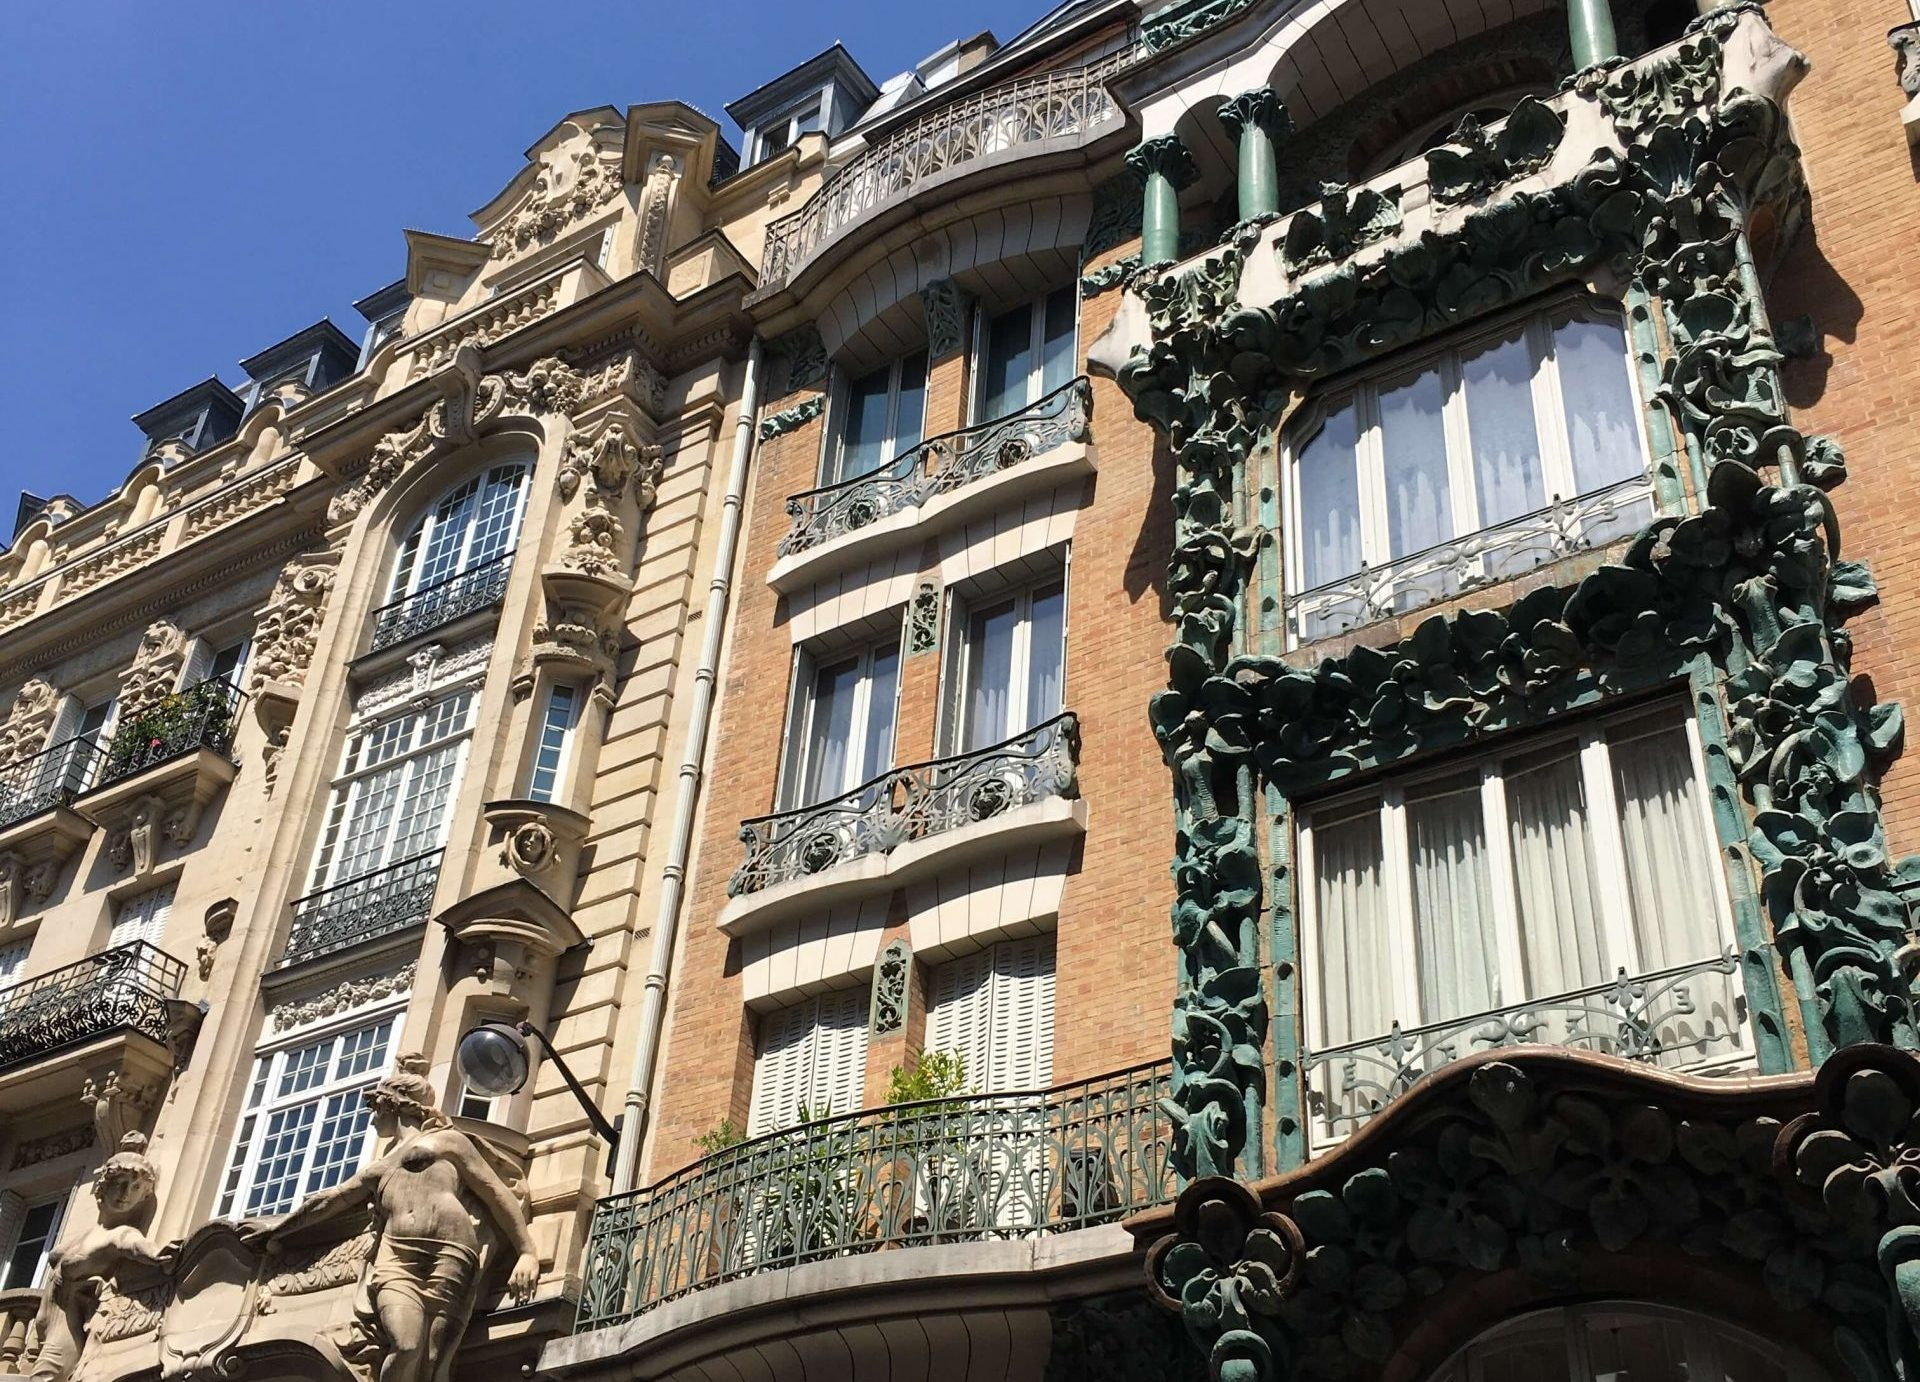 Parisian balcony in the 10th arrondissement in Paris